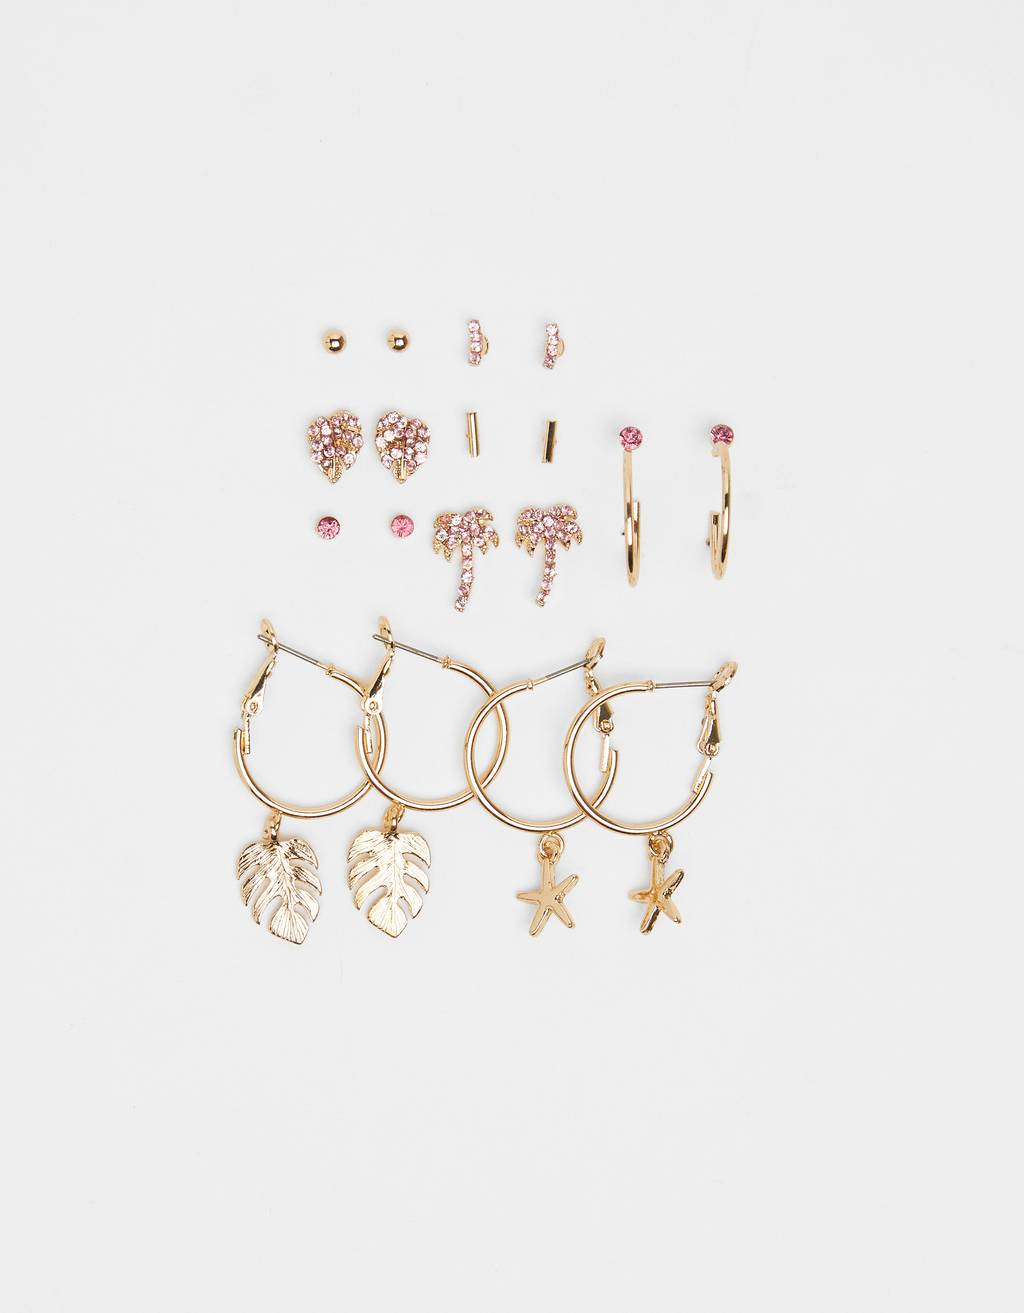 Set of beach-inspired earrings